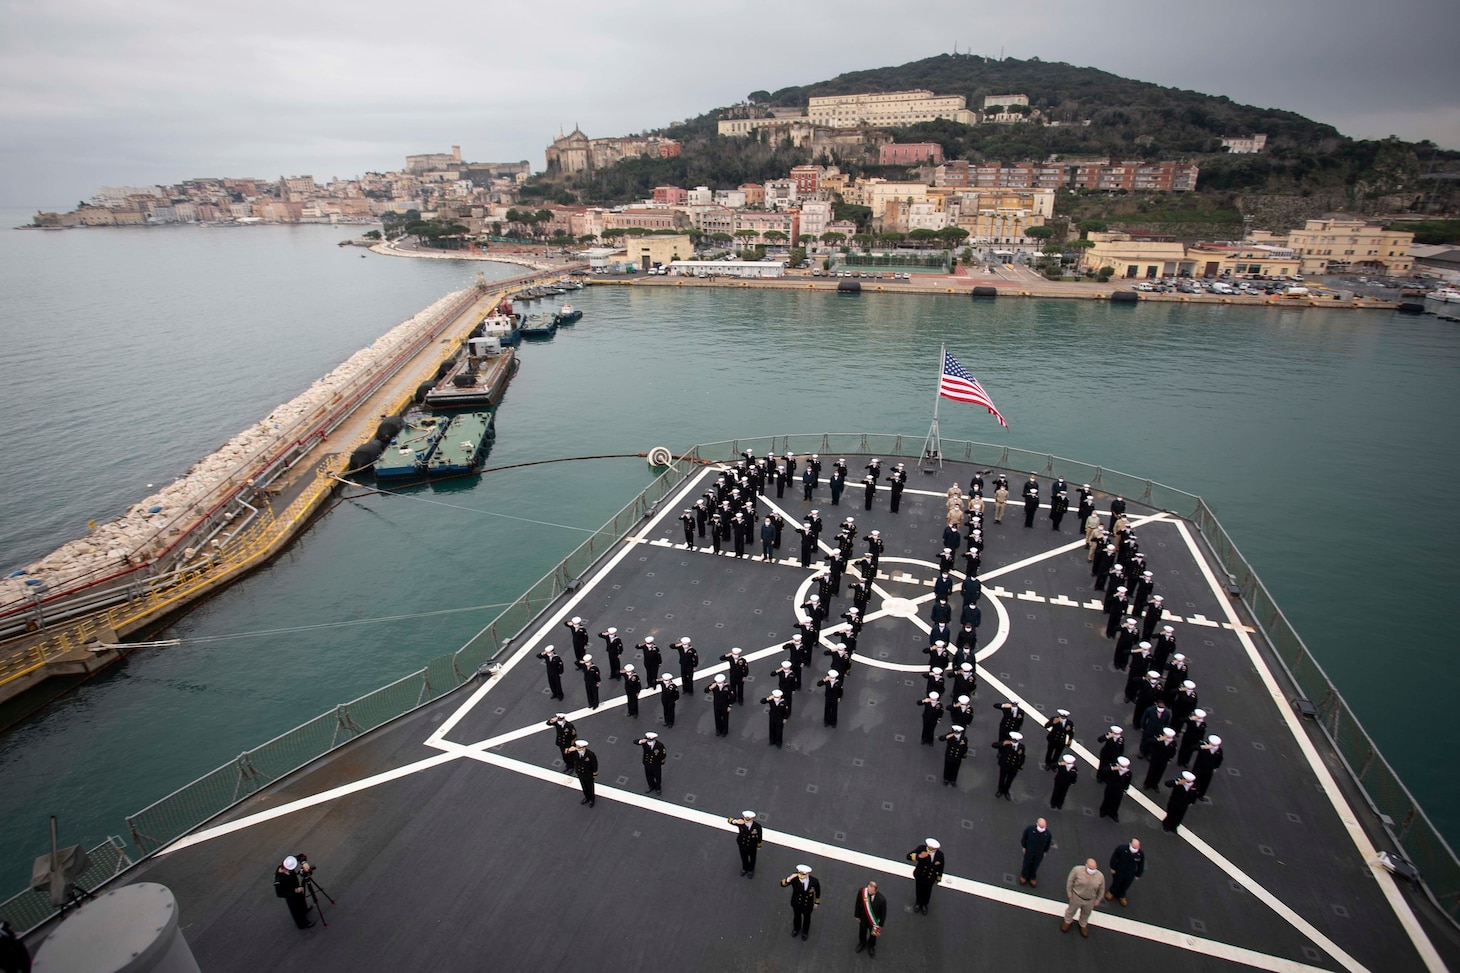 120114-N-NO901-0054 GAETA, Italy (Jan. 14, 2021) The crew of U.S. Sixth Fleet command and control ship USS Mount Whitney (LCC 20) stands in formation during the ship's 50th anniversary celebration, Jan. 14, 2021, in Gaeta, Italy. U.S. Sixth Fleet, headquartered in Naples, Italy, conducts the full spectrum of joint and naval operations, often in concert with allied and interagency partners, in order to advance U.S. national interests, security and stability in Europe and Africa. (U.S. Navy photo by Hospital Corpsman 2nd Class Jared Kercell/ Released)